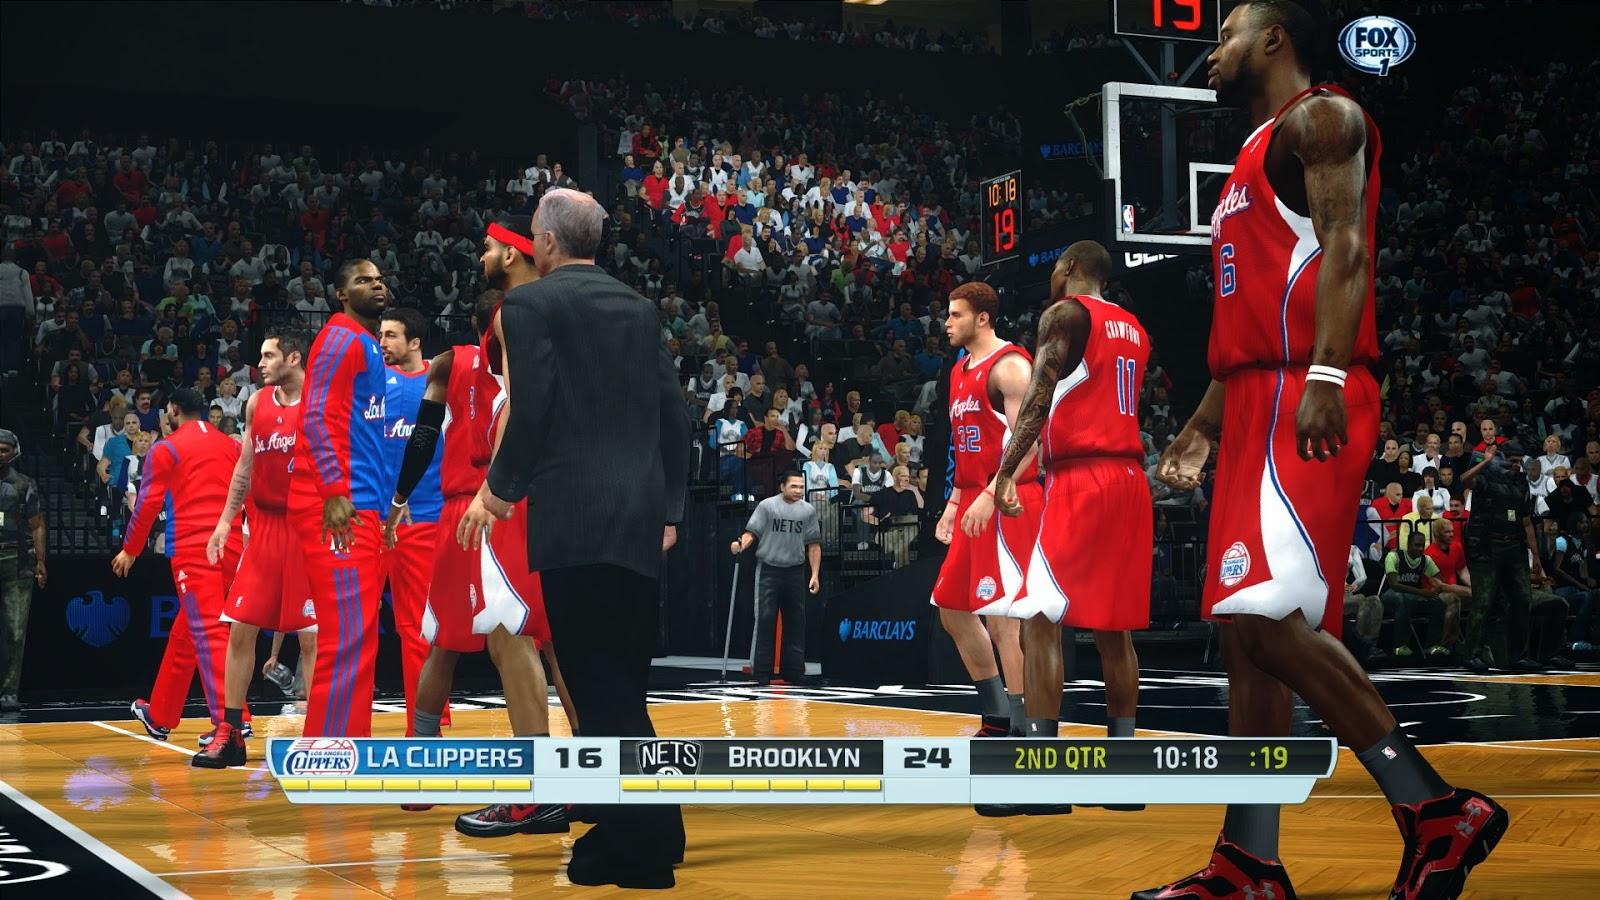 nba 2k14 iso ppsspp